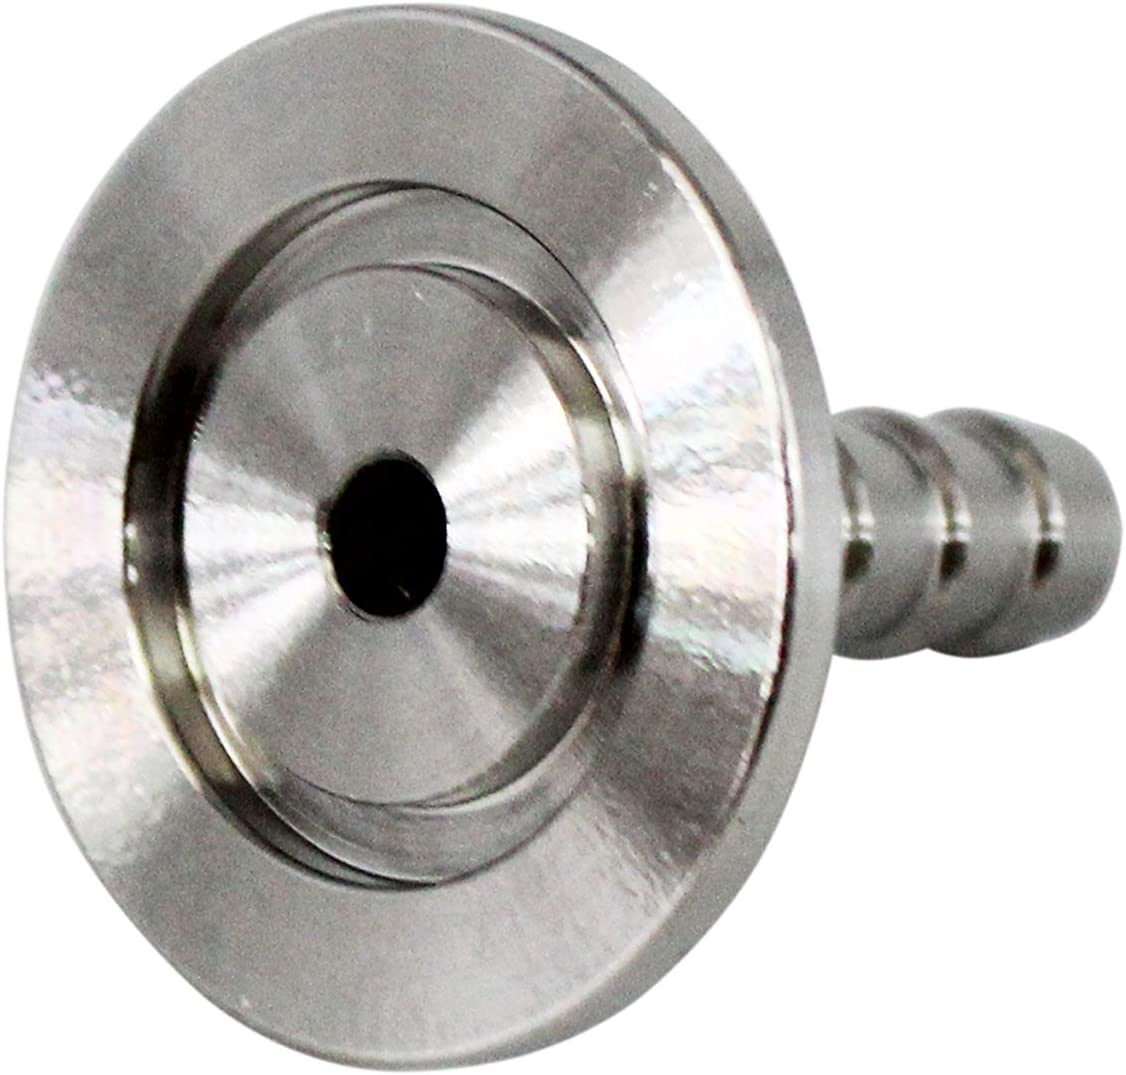 KF25-3//8 R HFS Vacuum Fitting to Hose Adapter Flange